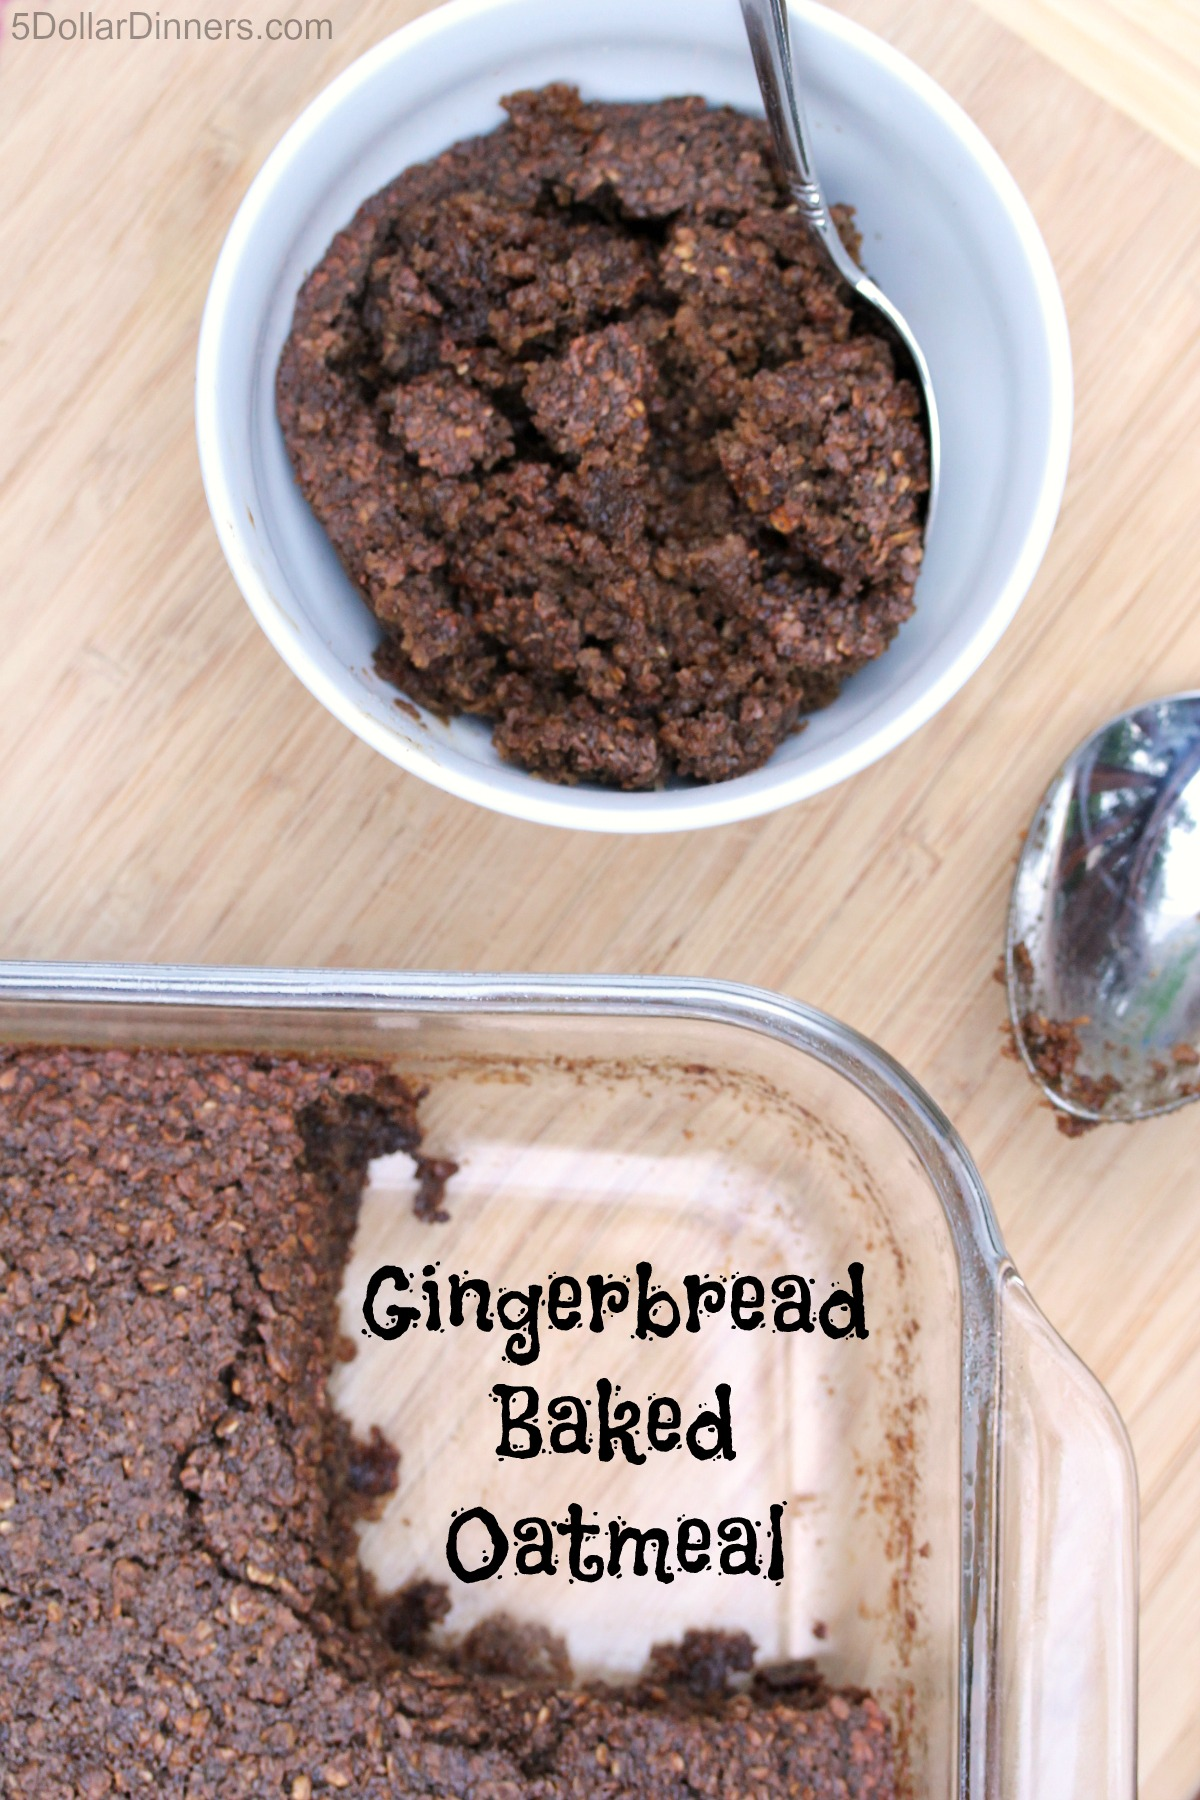 Gingerbread Baked Oatmeal from 5DollarDinners.com